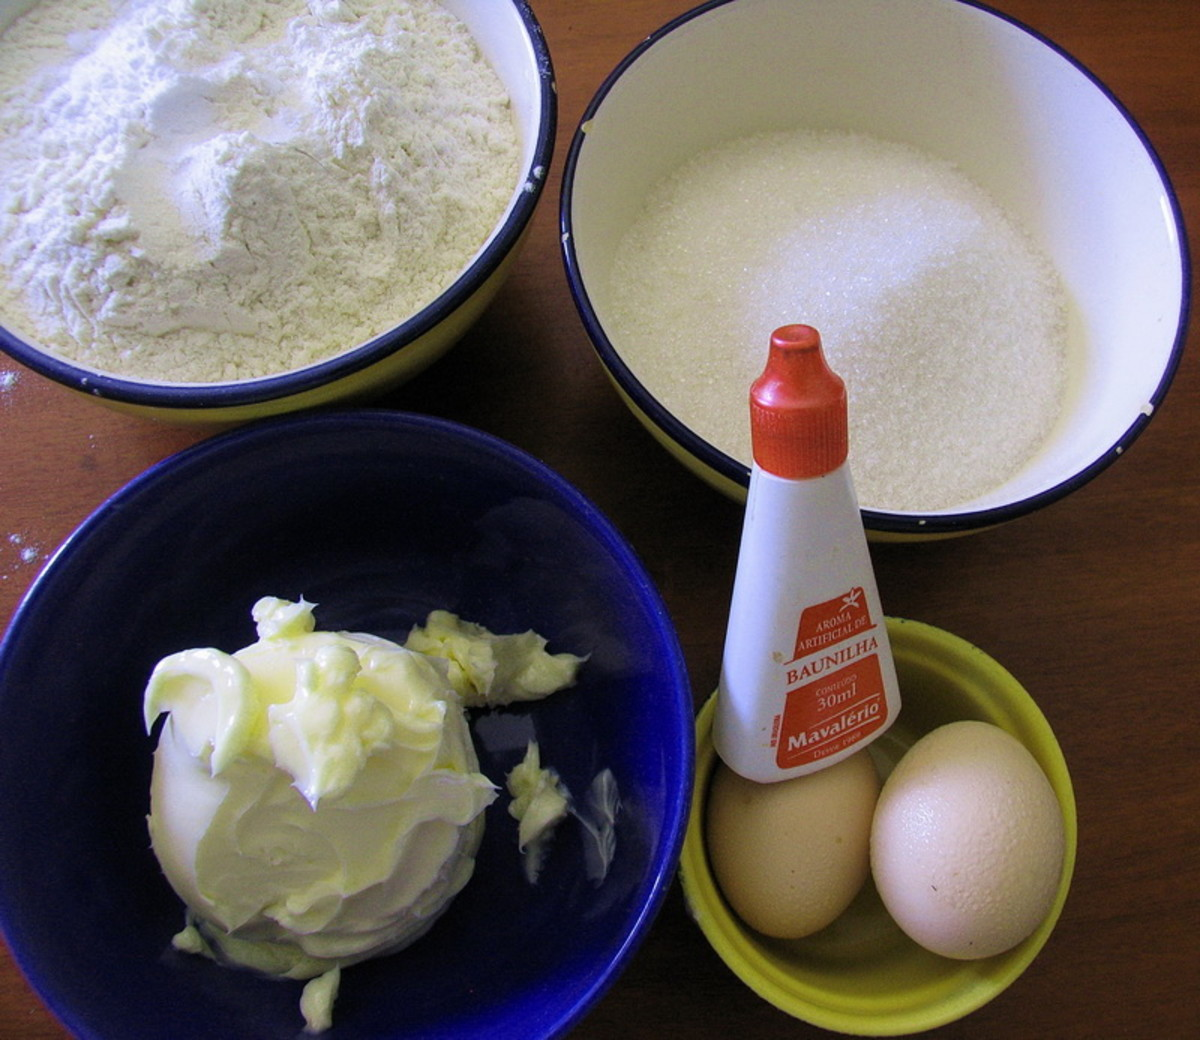 Ingredients for snickerdoodles